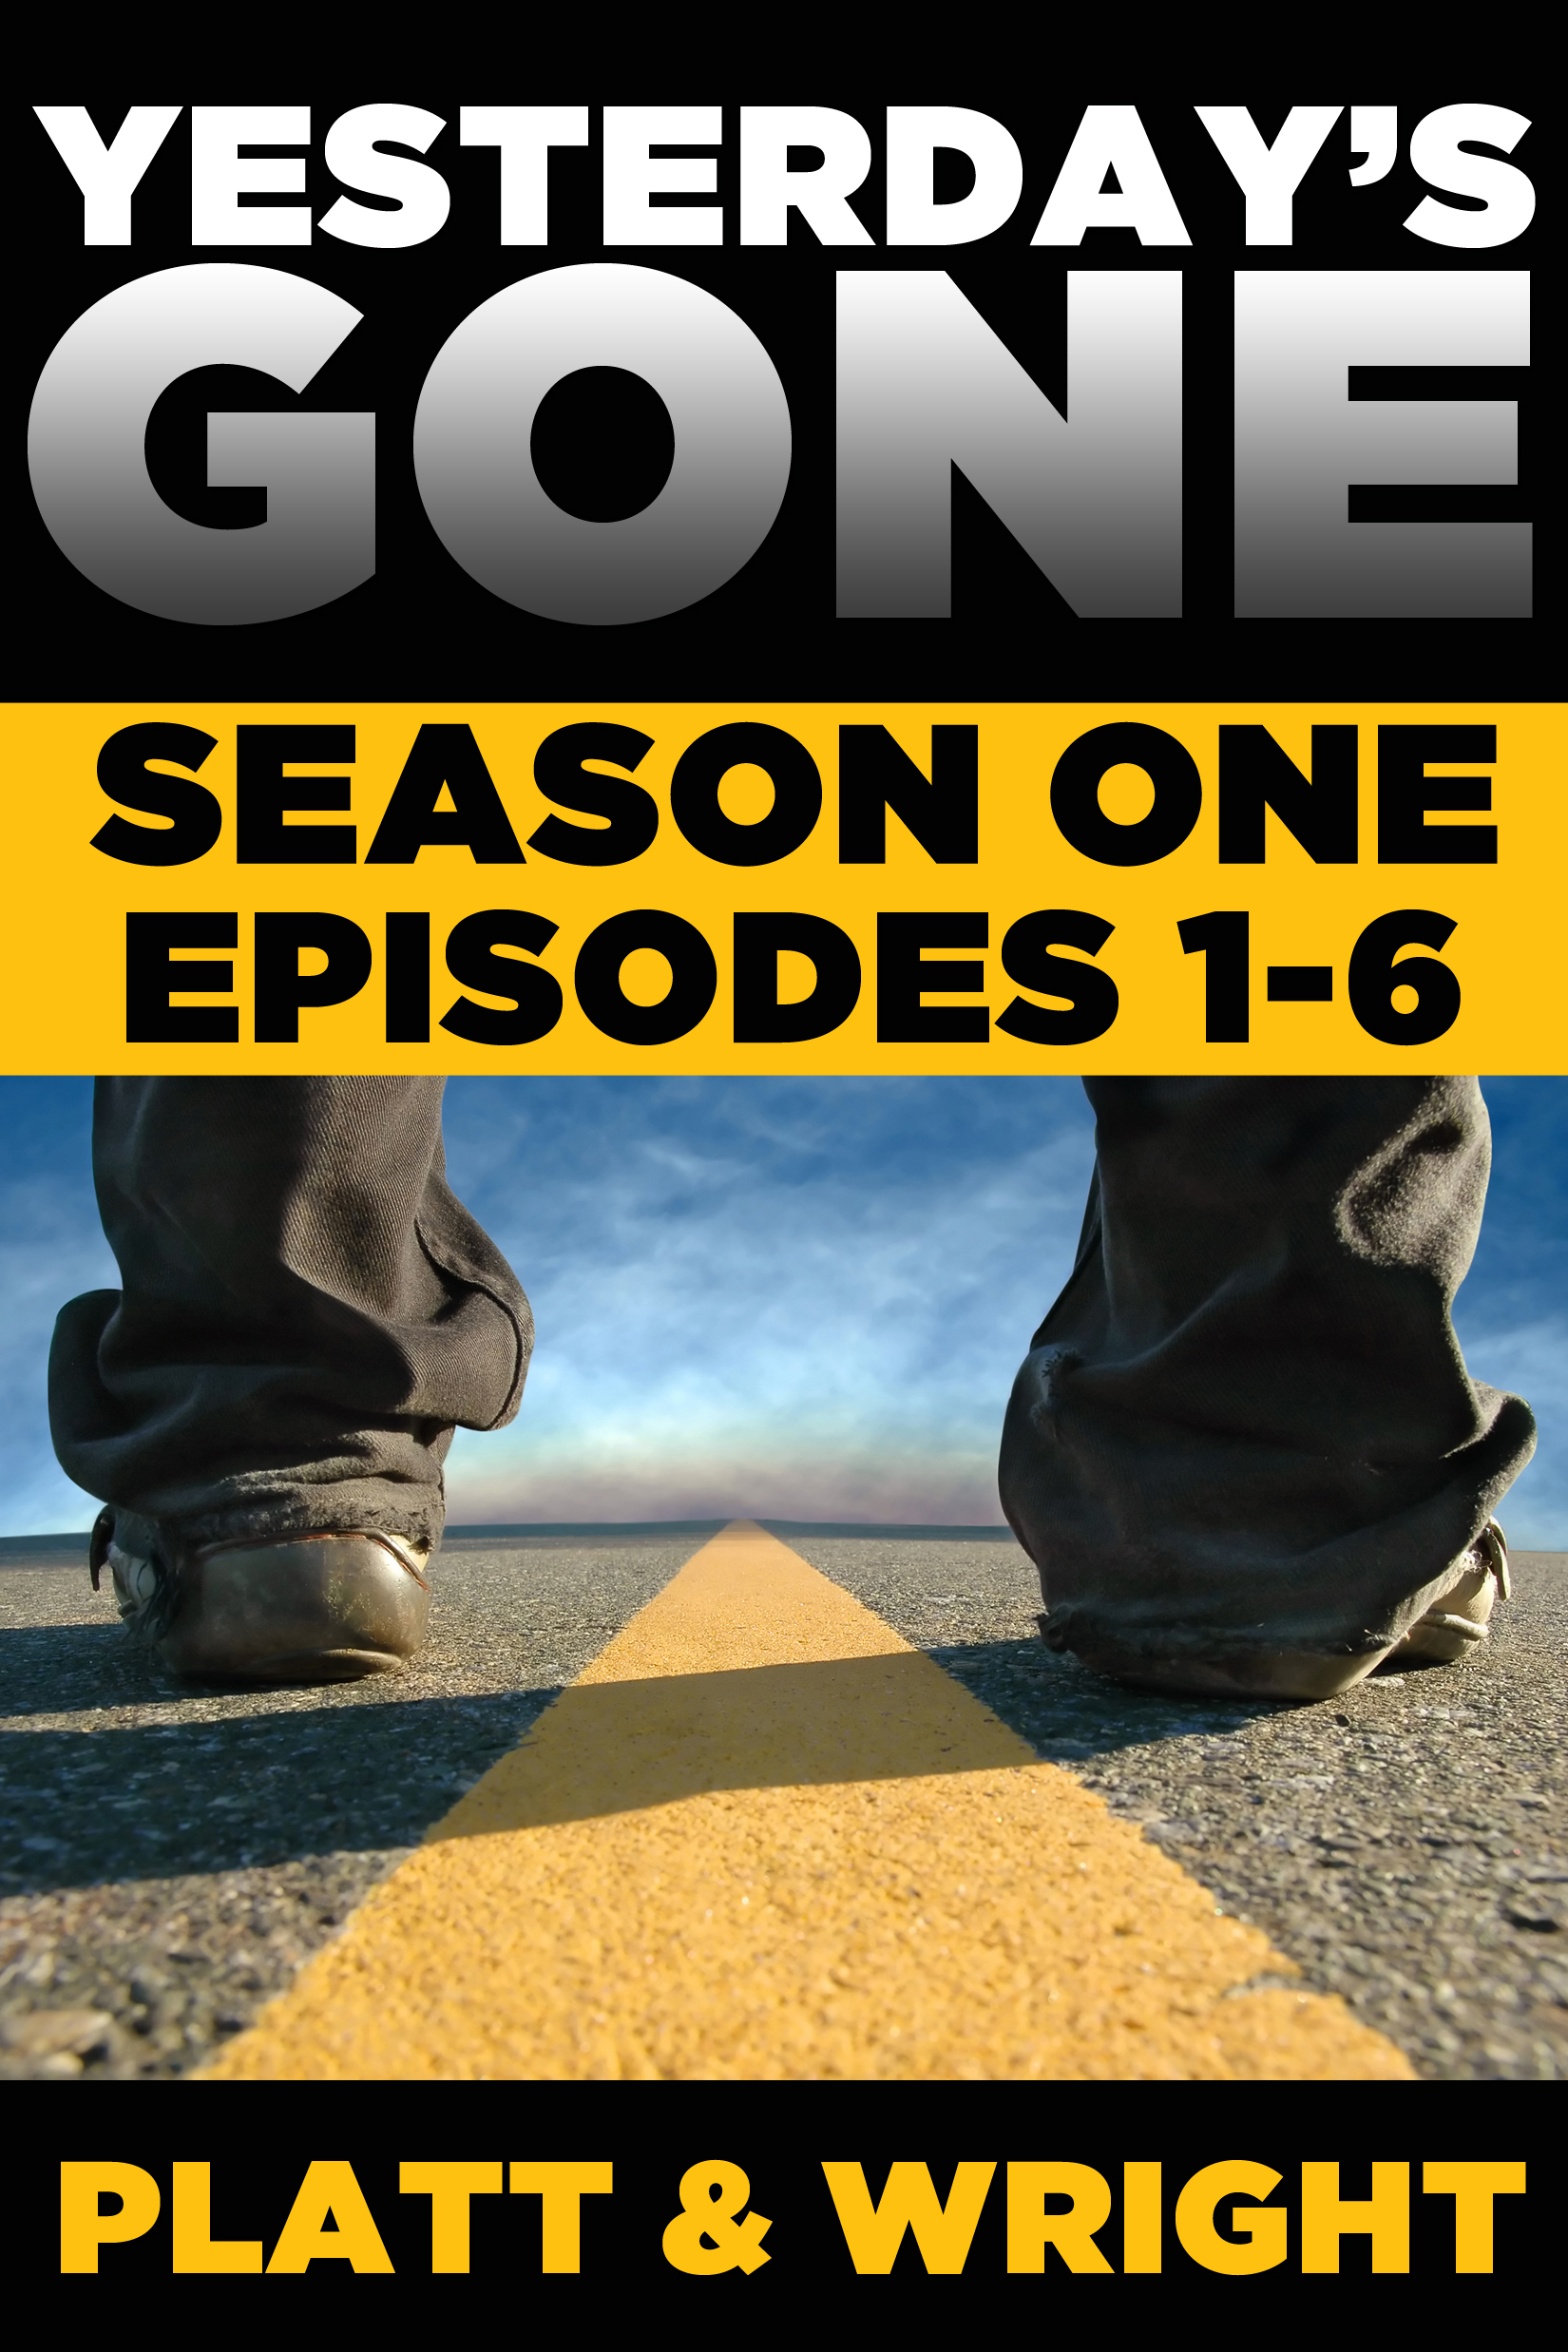 Yesterday's Gone: Season One (Episodes 1-6)